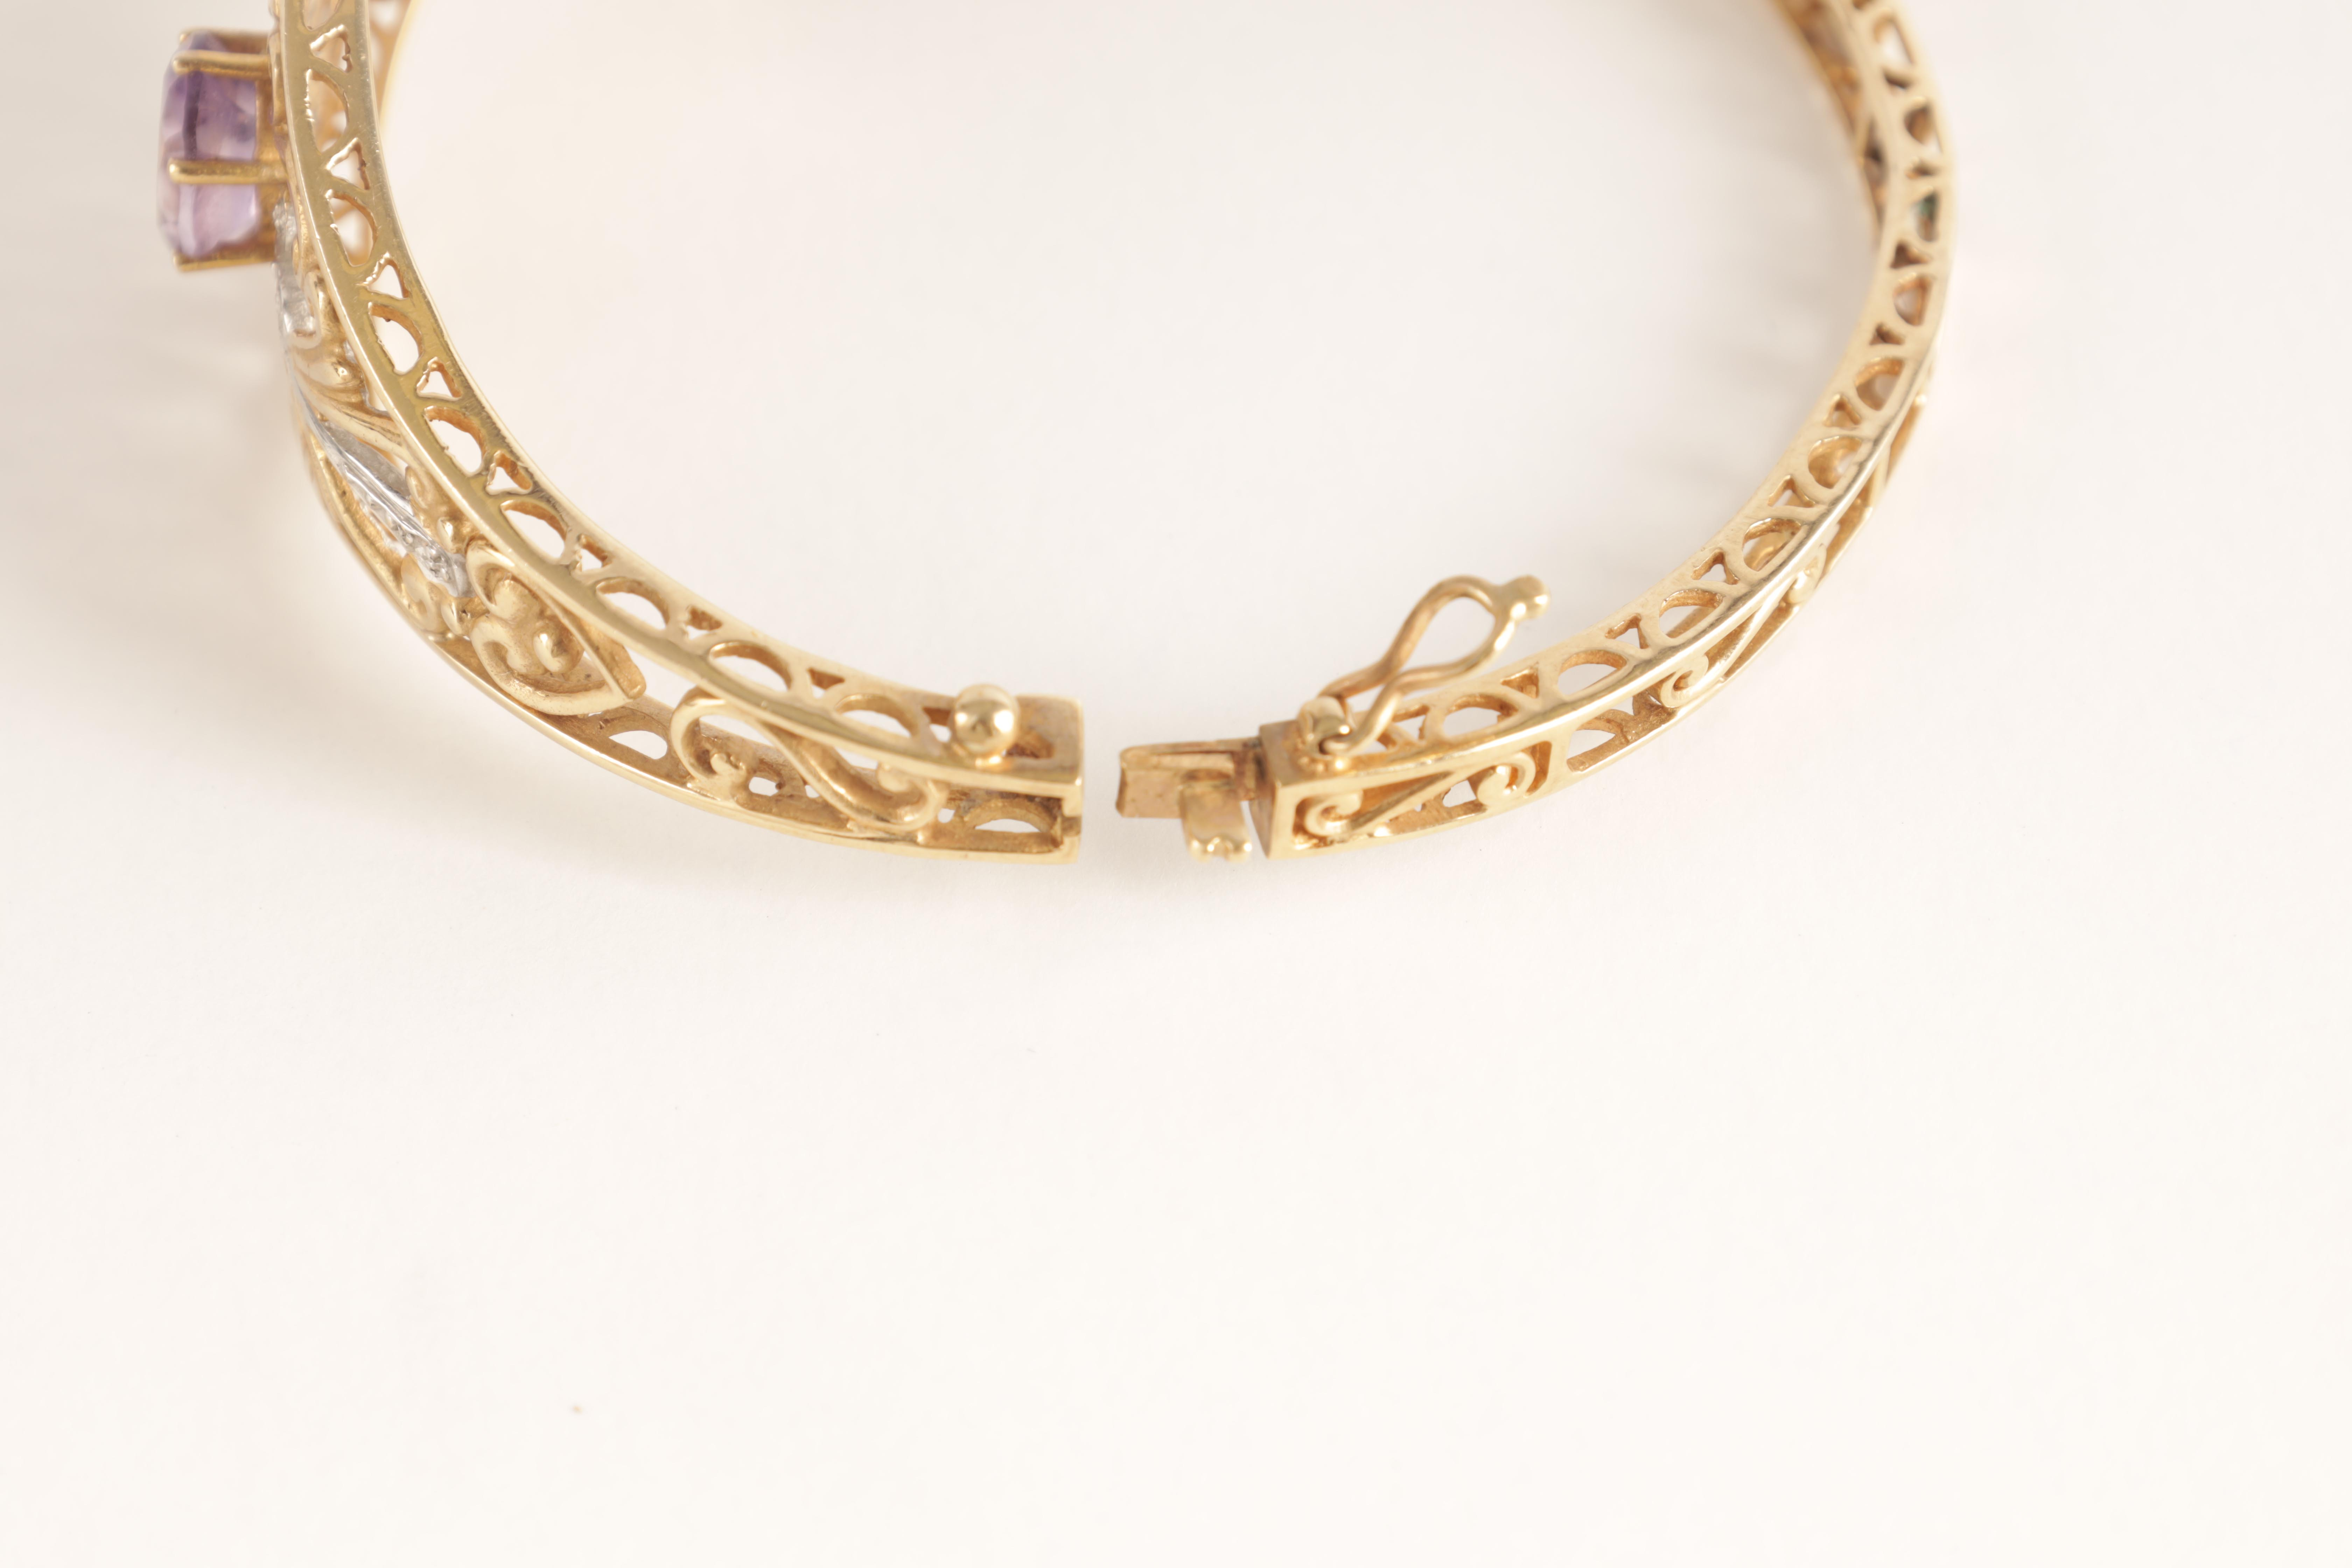 A LADIES 9CT GOLD DIAMOND AND AMETHYST BANGLE having filigree scrollwork decoration with diamonds - Image 4 of 4